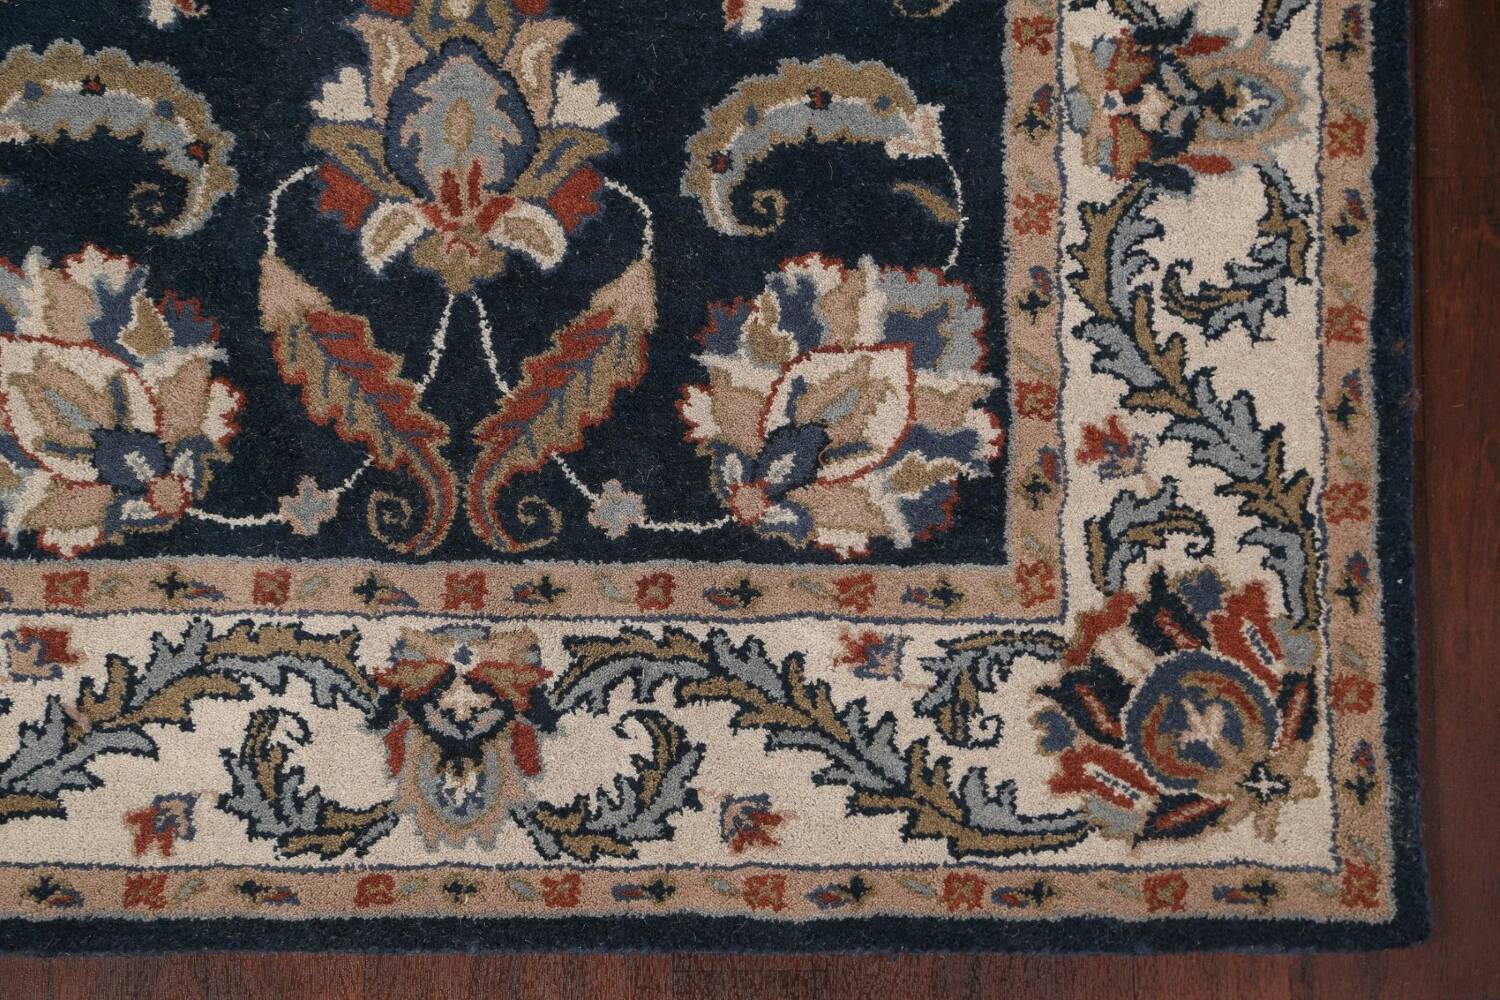 Floral Agra Wool Area Rug 5x8 image 7